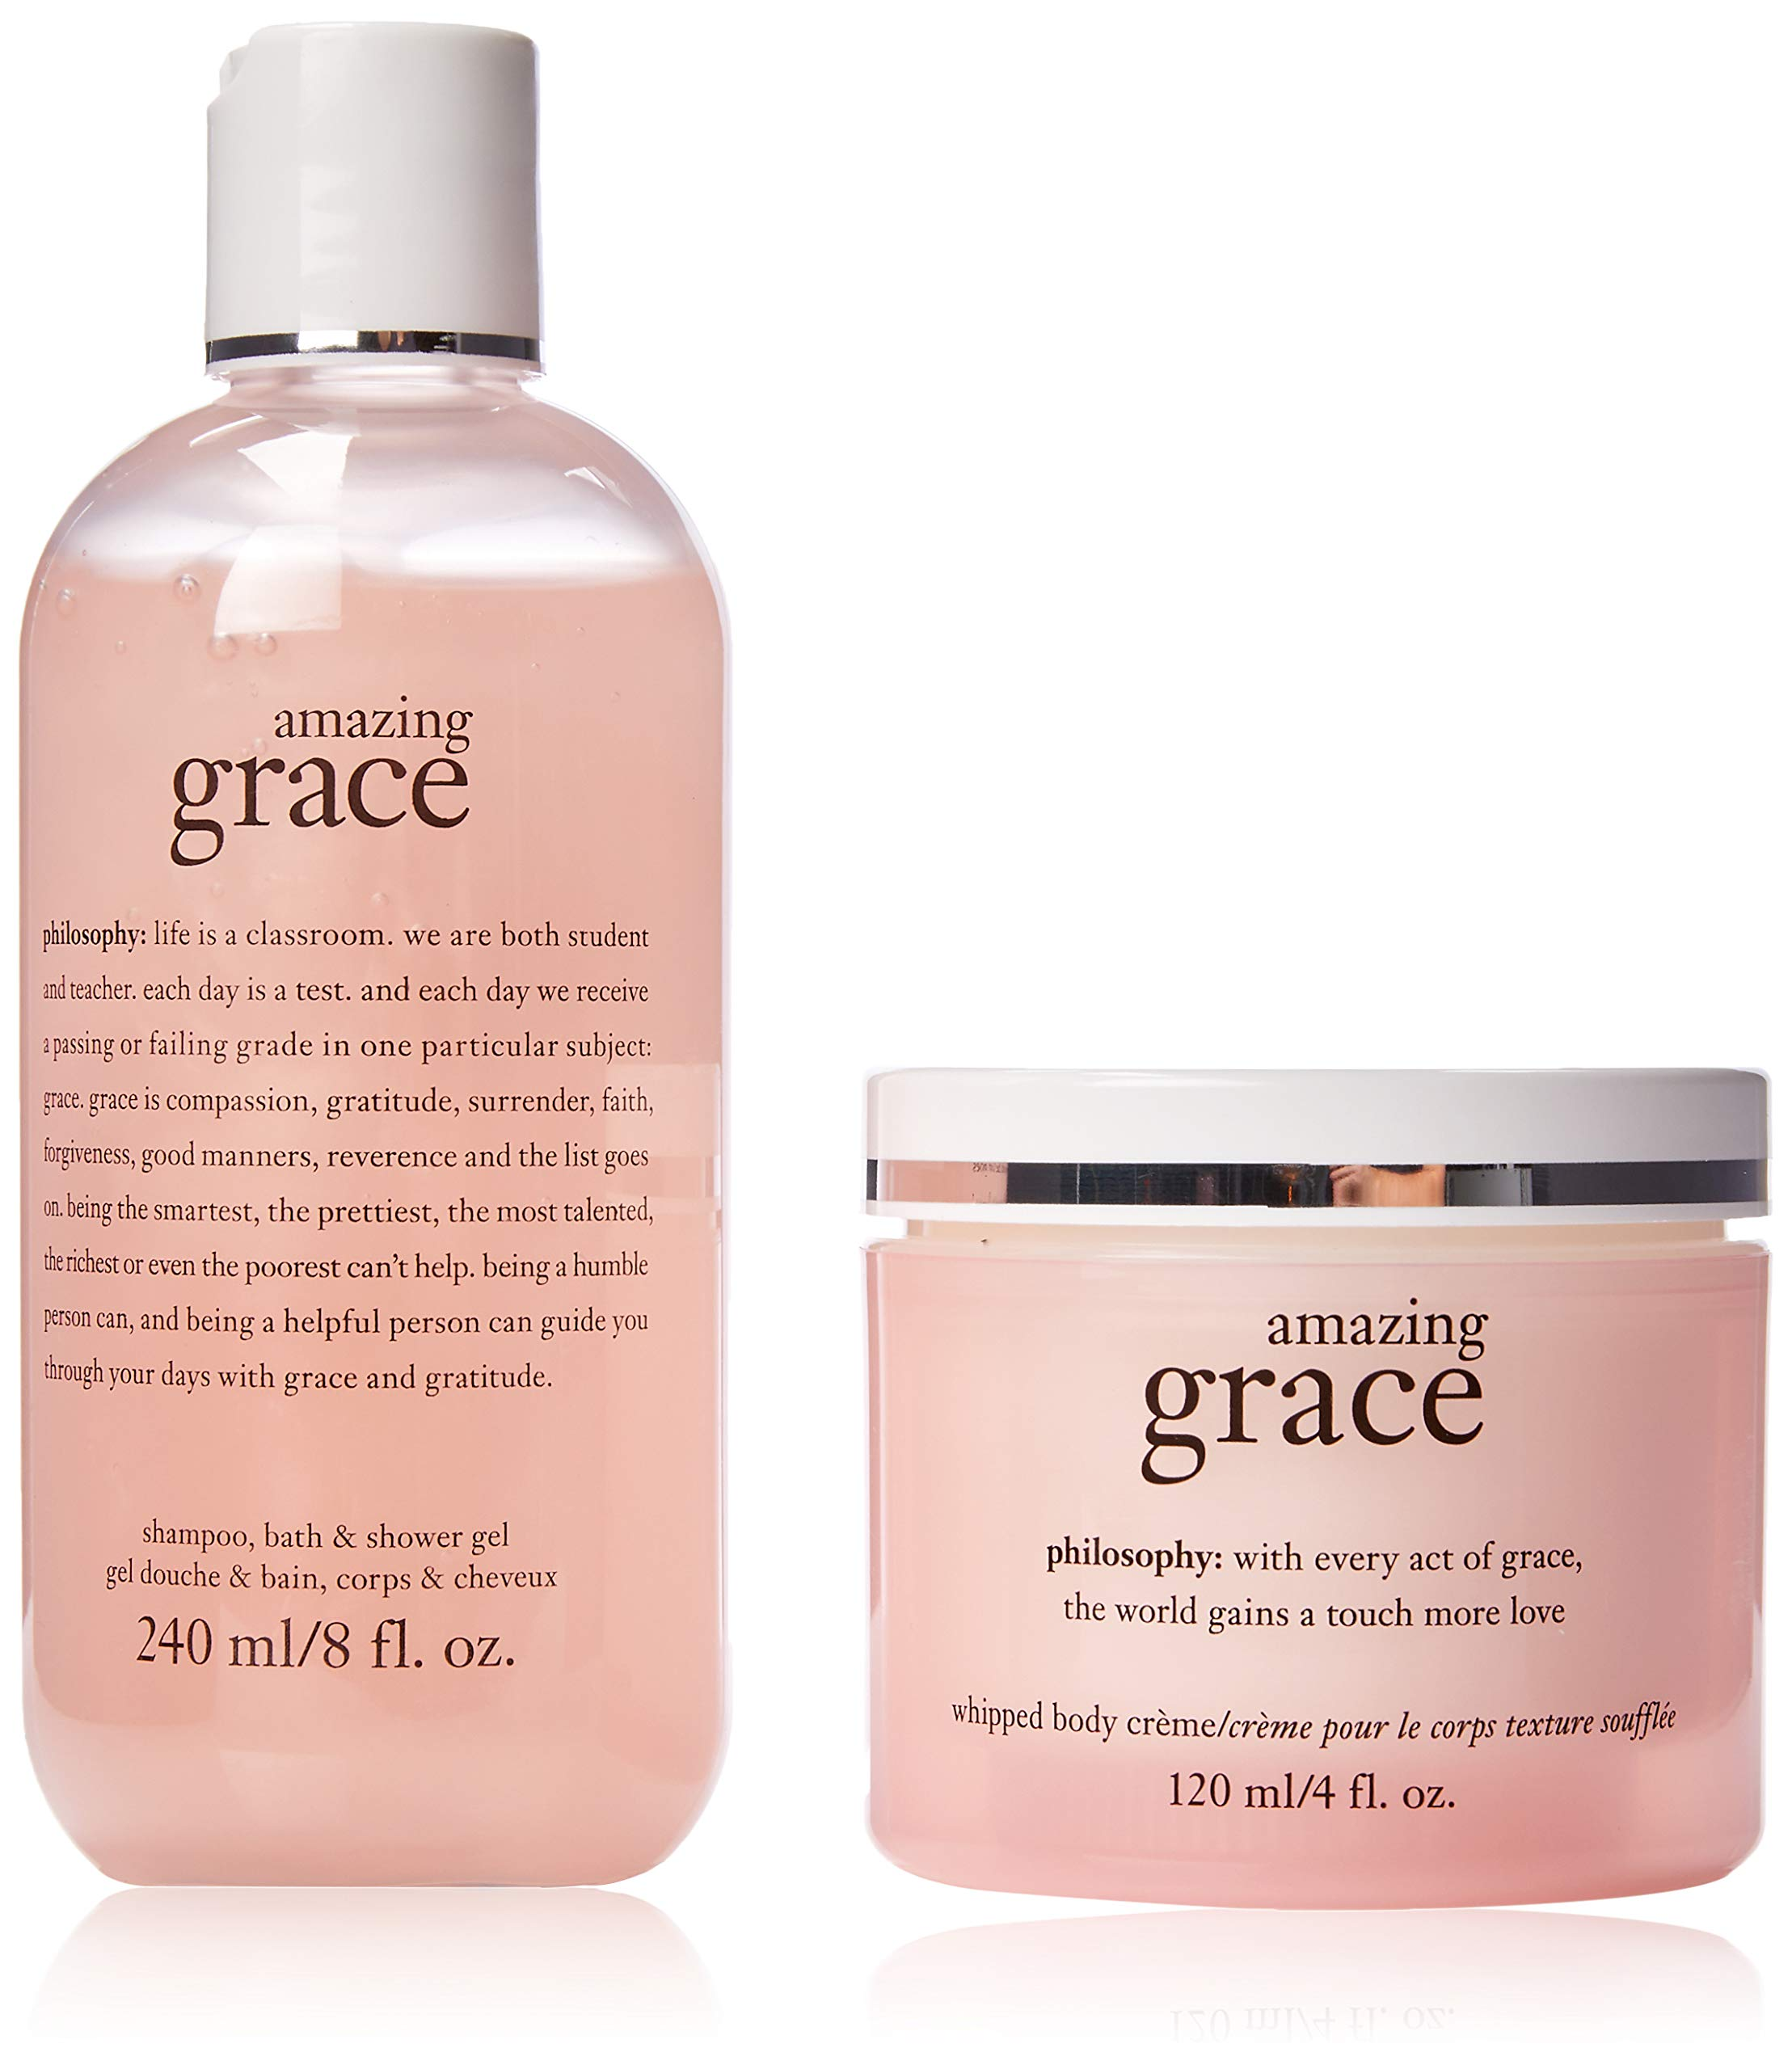 Philosophy Youre Amazing By Philosophy for Women - 2 Pc Set 8oz Shampoo, Bath & Shower Gel Amazing Grace, 4oz Whipped Body Creme Amazing Grace, 2count by Philosophy